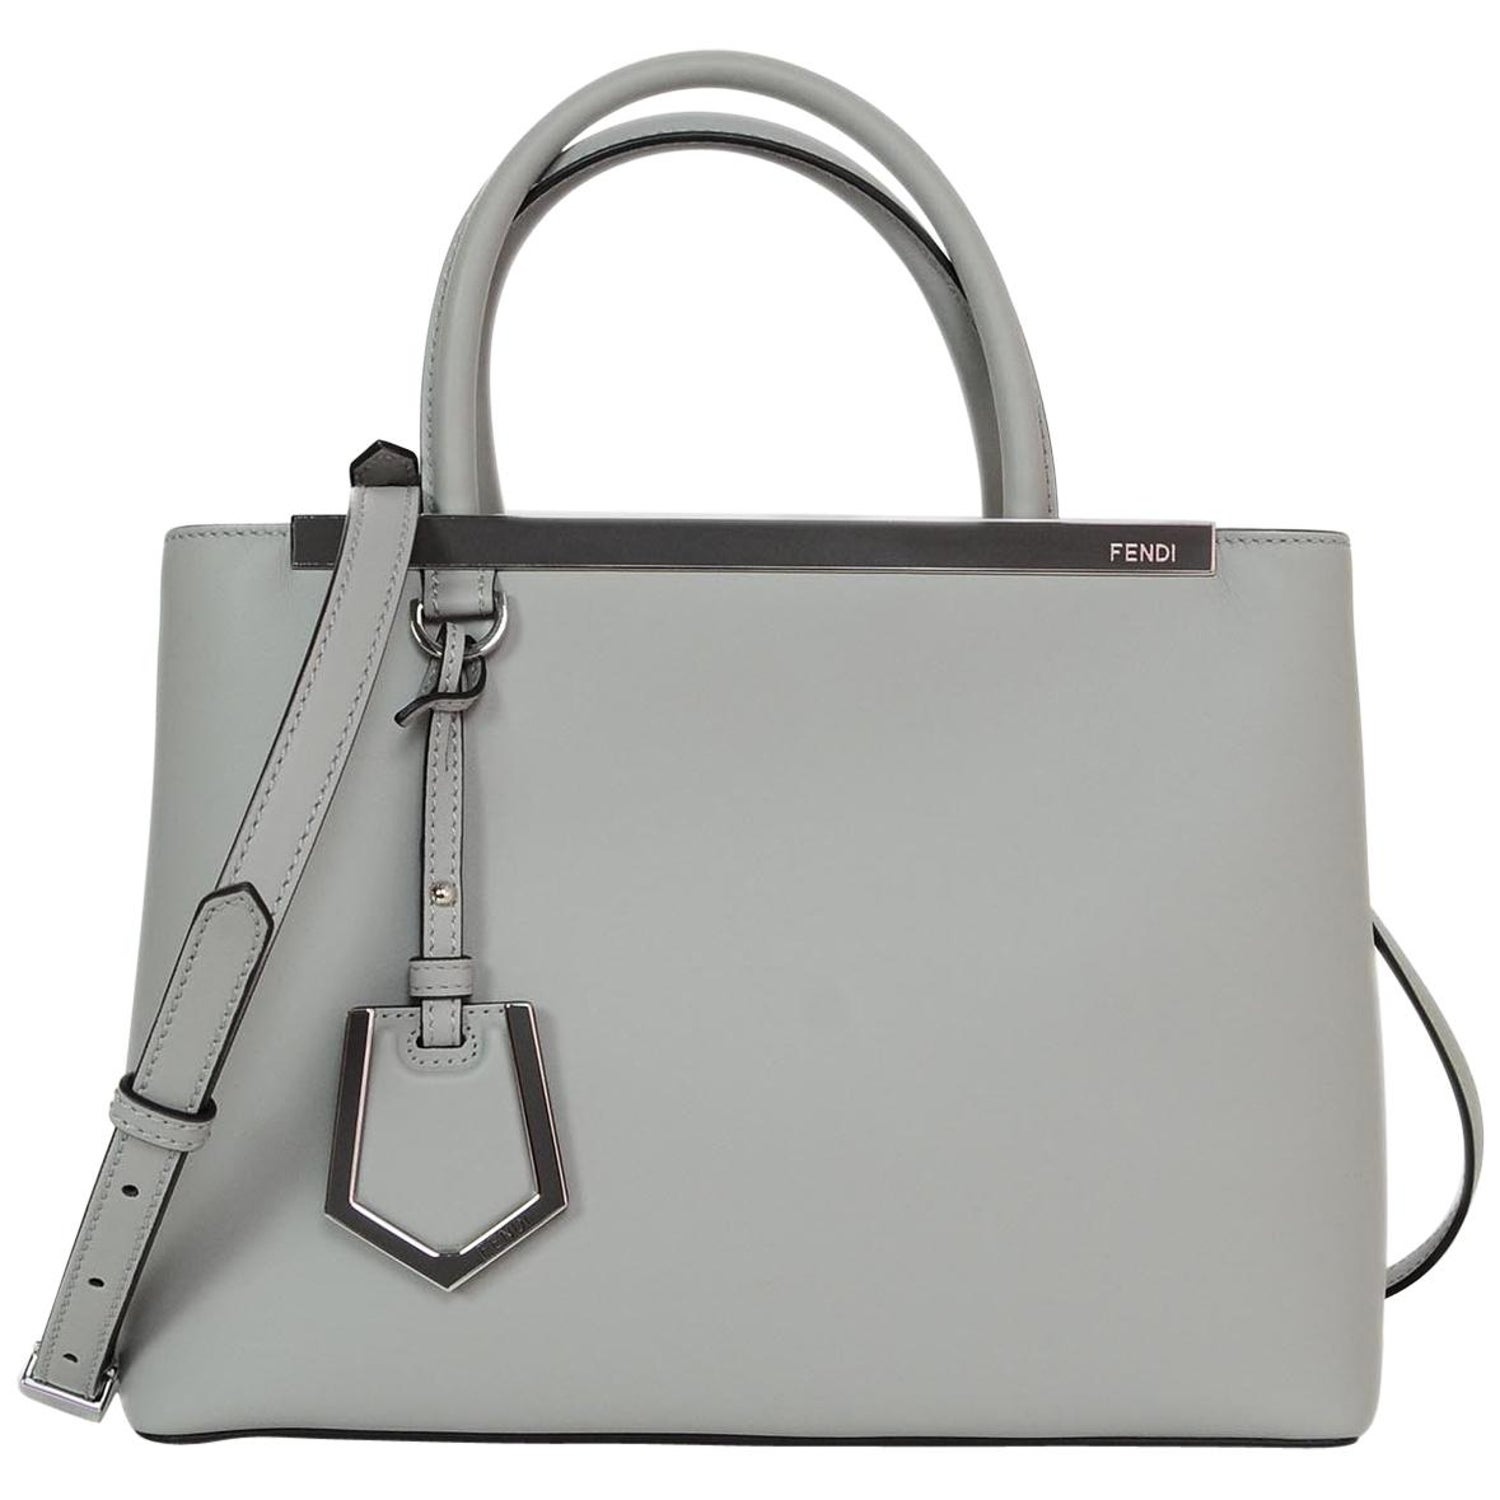 691a0eaa8aca Fendi 2018 Ice Blue Grey and Camellia Leather Petite 2 Jours Satchel  Crossbody Bag For Sale at 1stdibs